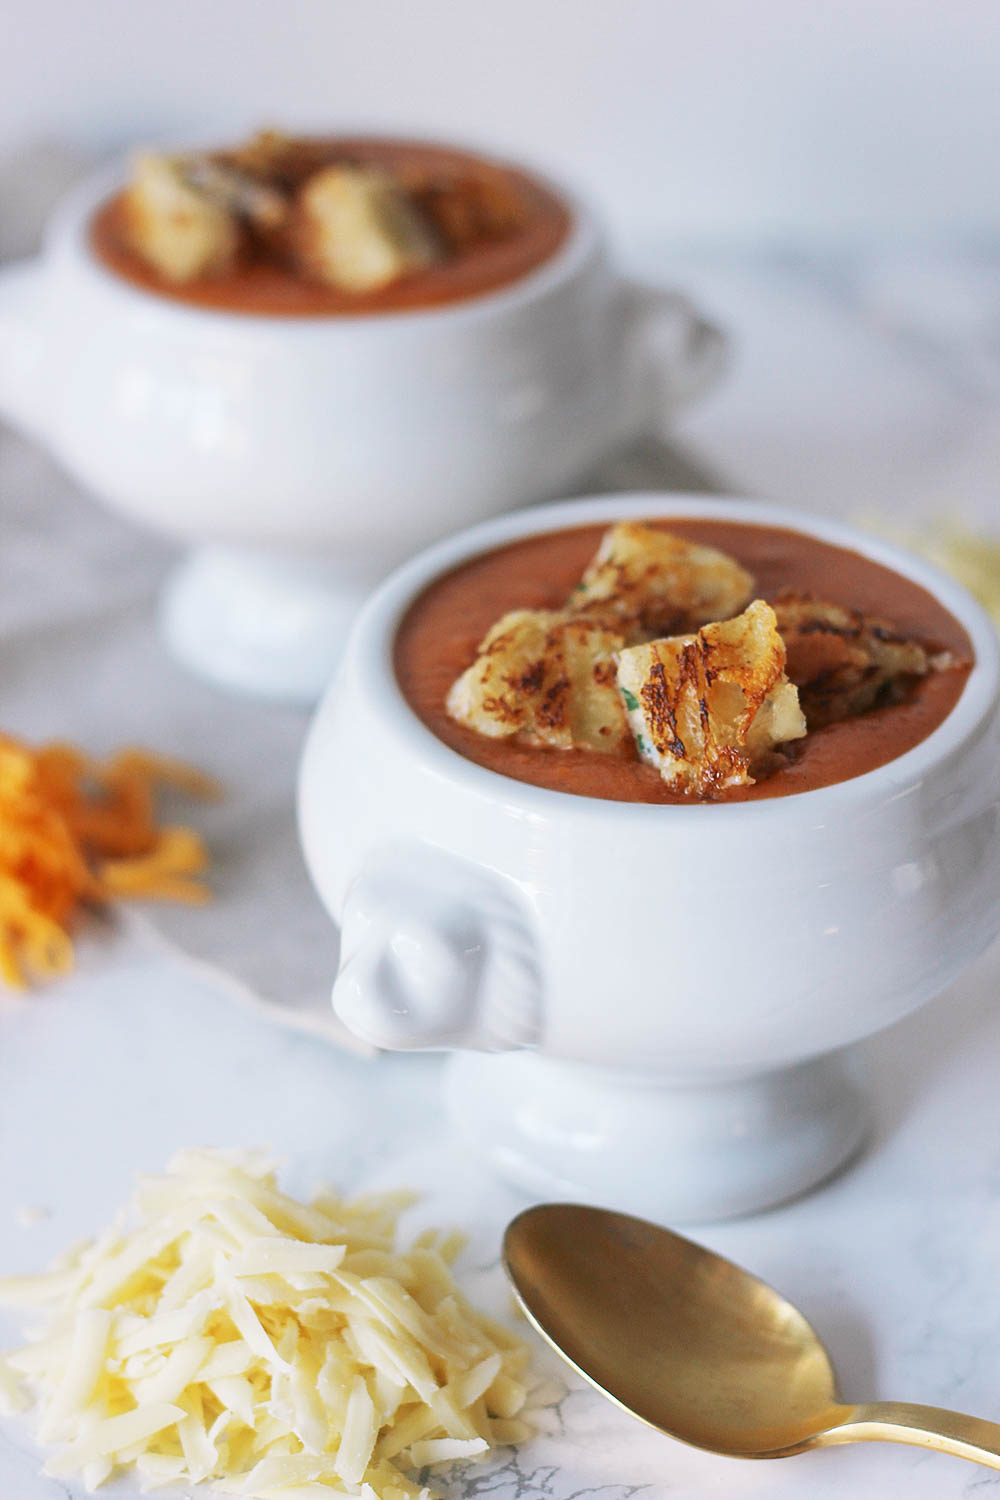 Dress up a delicious bowl of tomato bisque with crab-filled grilled cheese cut into bite-size croutons. Get the full recipe at HomemadeBanana.com